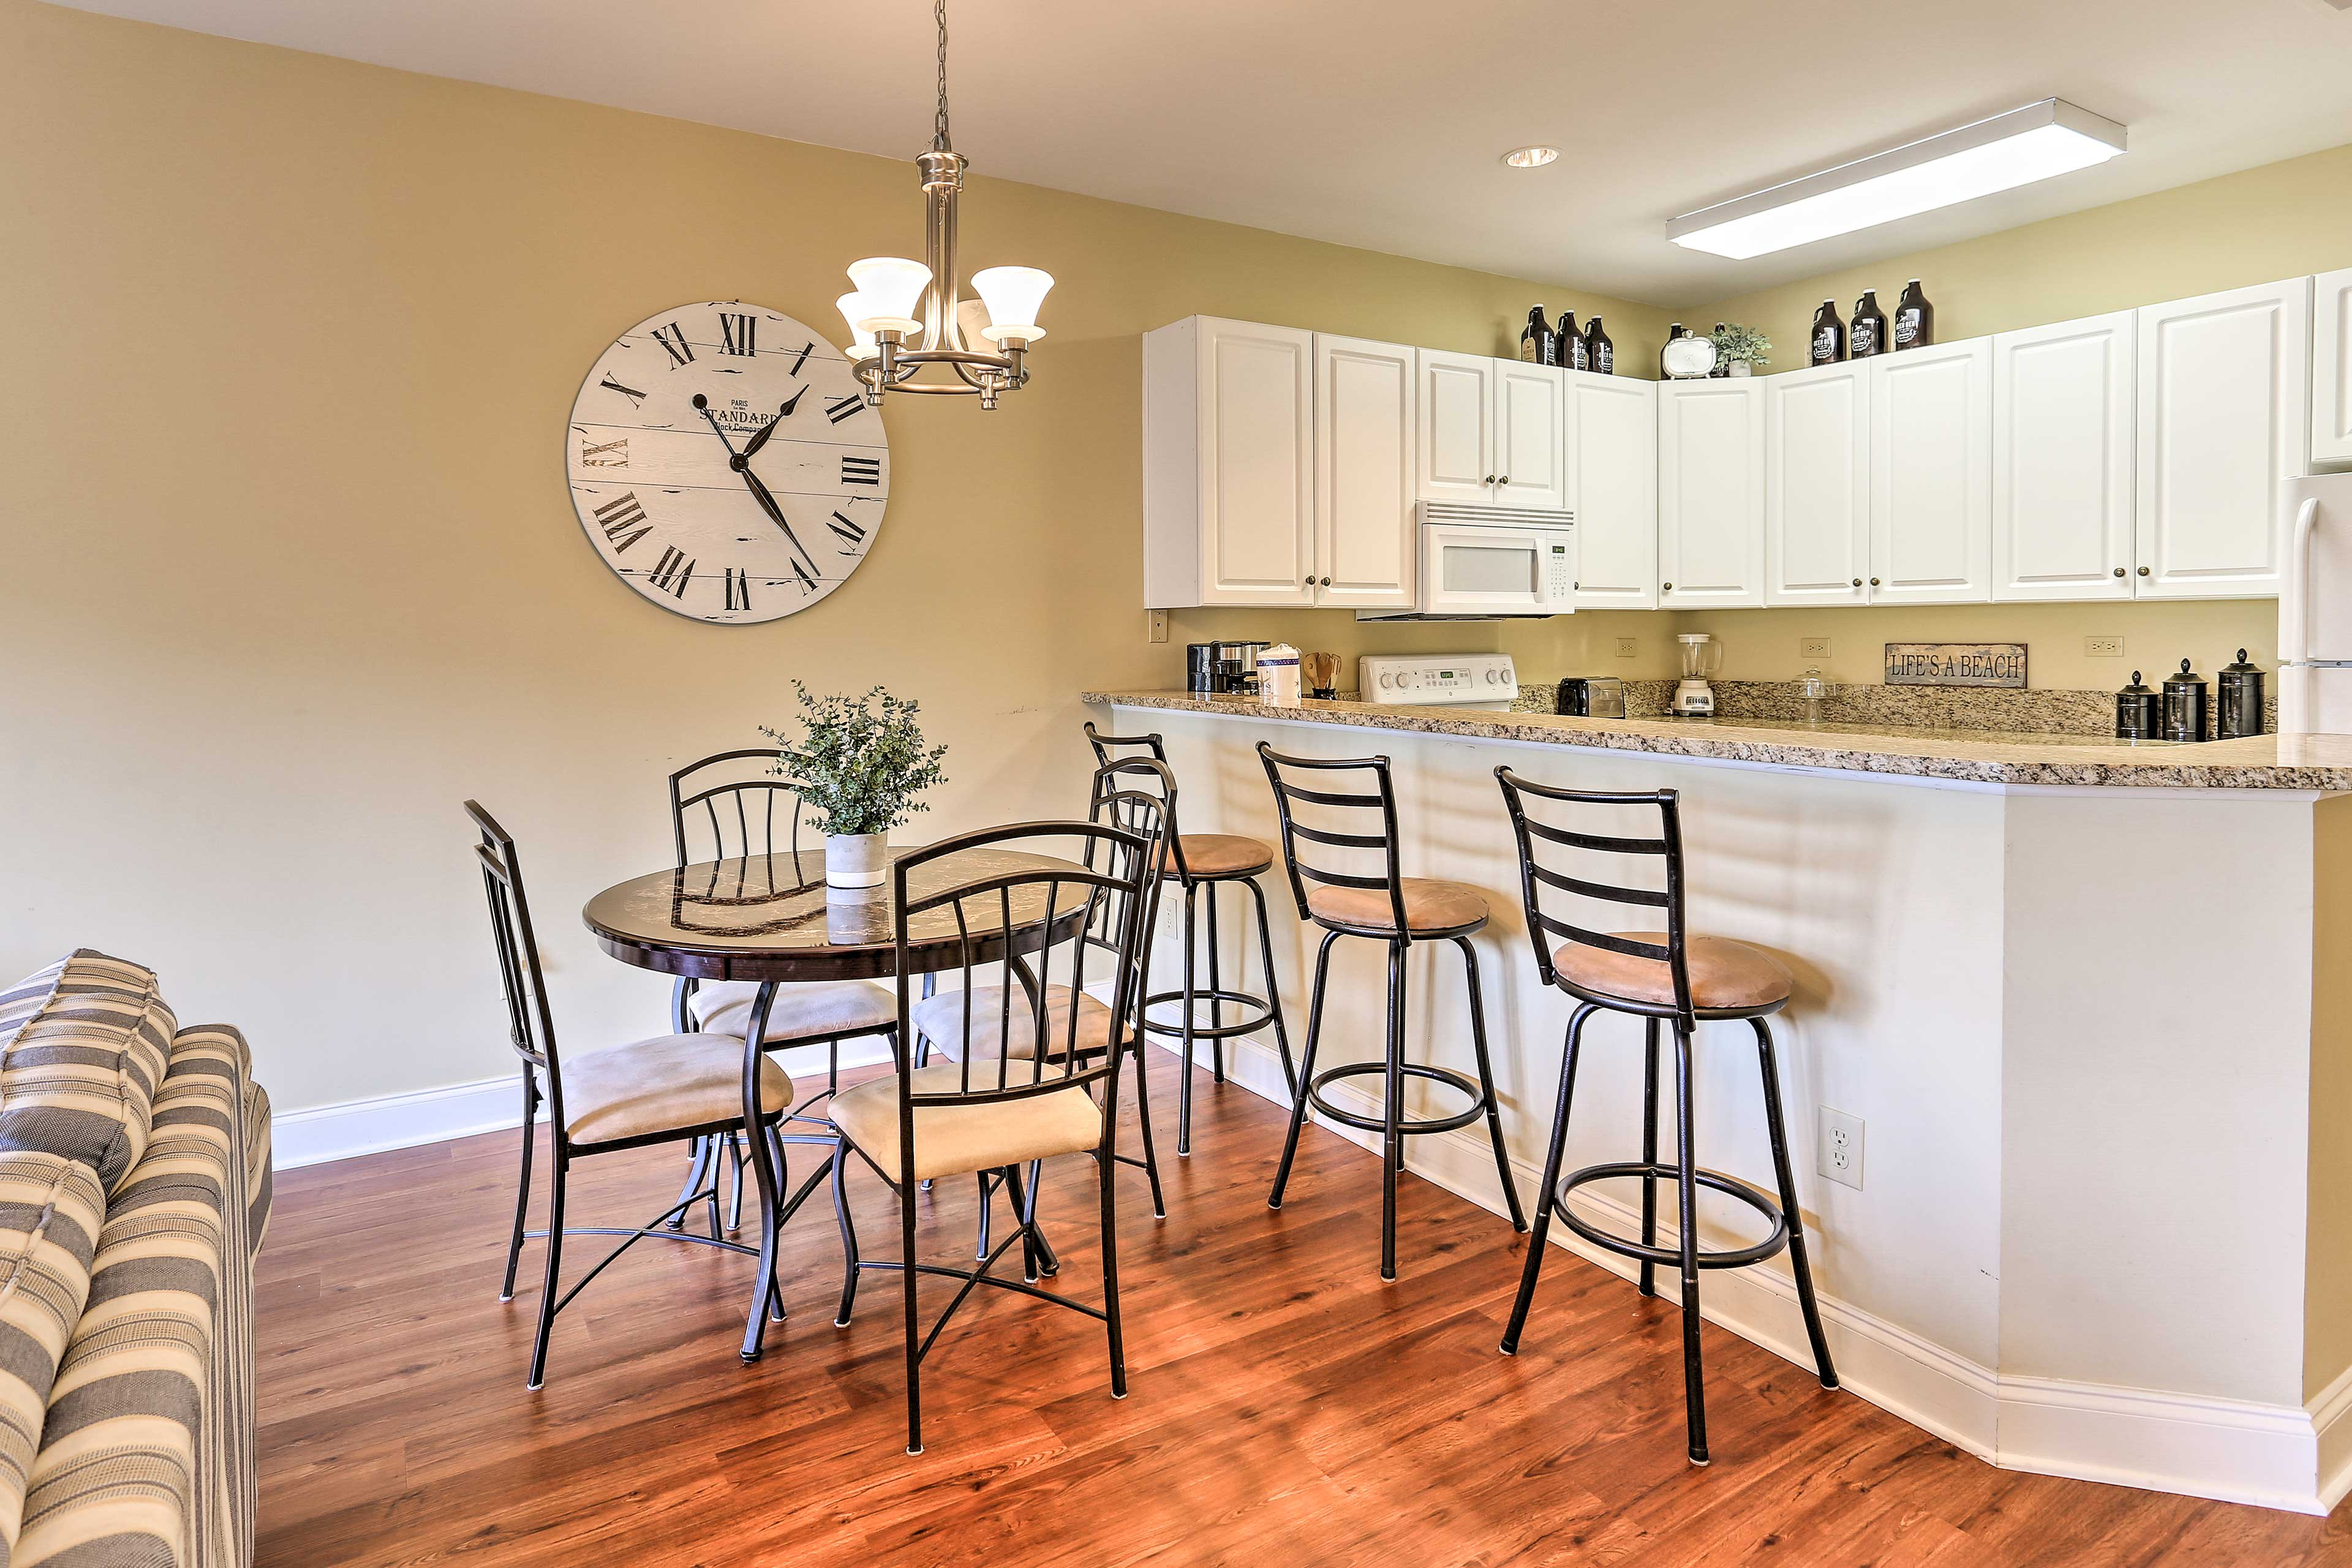 Enjoy home-cooked meals at the bar-style table with seating for 4.